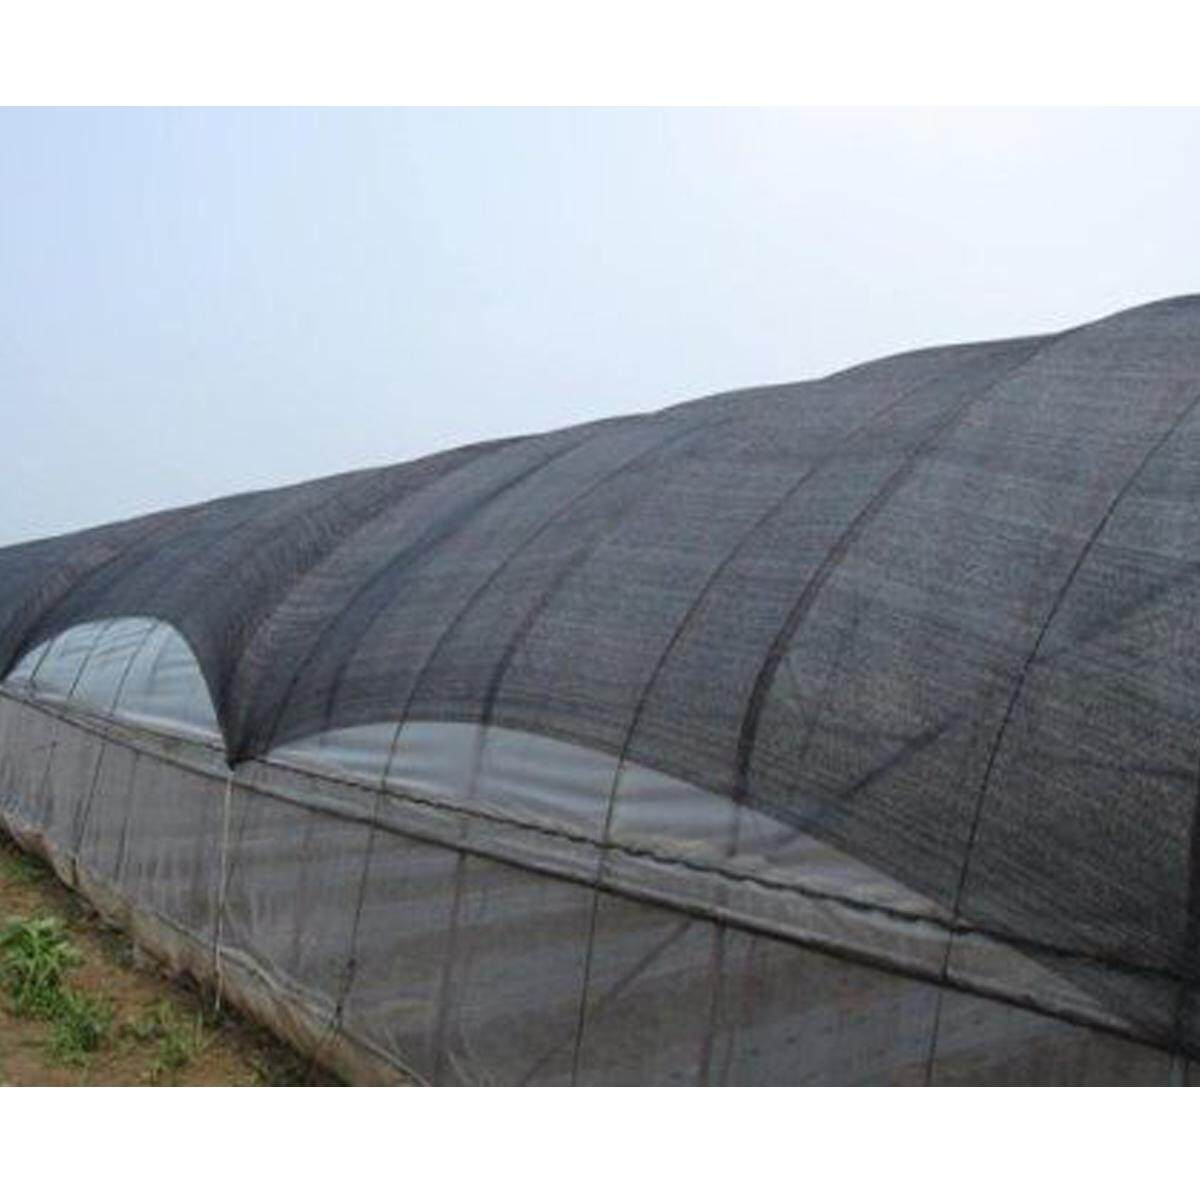 30% Sunblock Shade Cloth for Plant Cover Greenhouse Barn 6/9/15m #2*9m